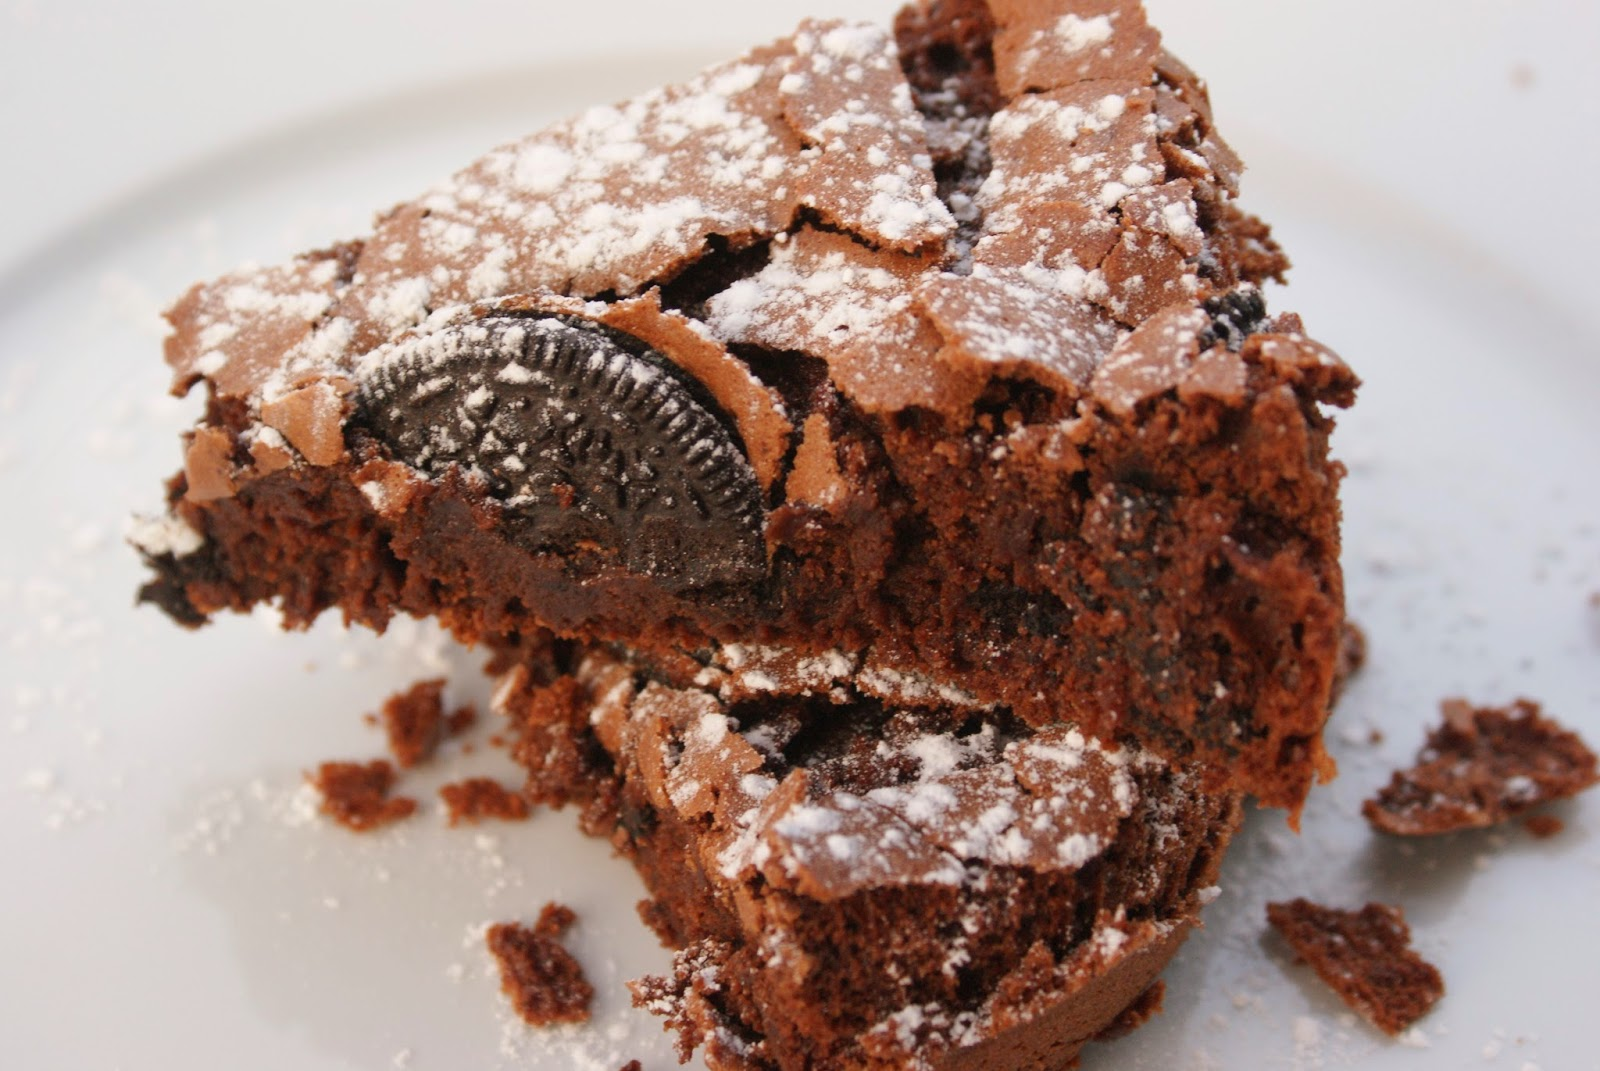 Canal Cocina Lorraine Pascale Brownie Con Galletas Oreo - Paperblog